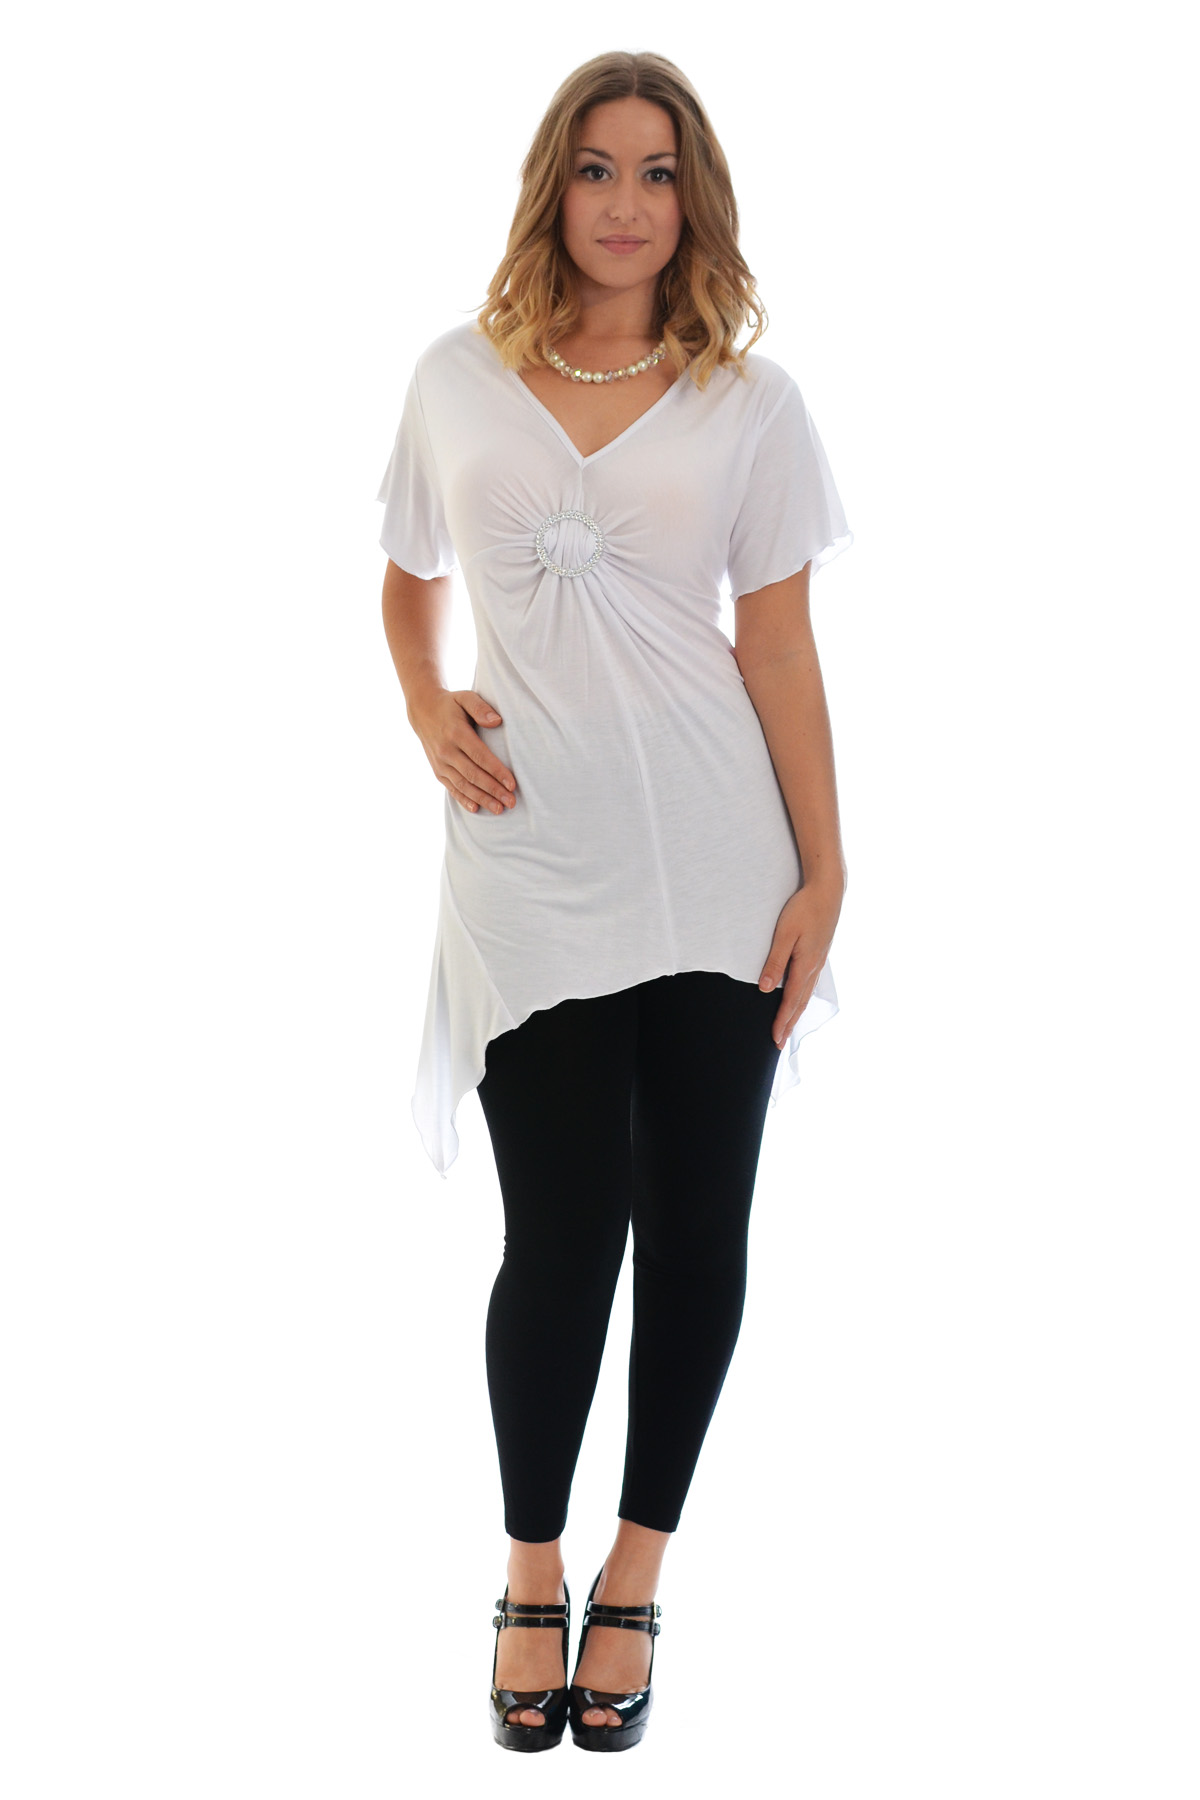 New-Womens-Plus-Size-Top-Ladies-T-Shirt-Buckle-Stud-A-Line-Asymmetric-Nouvelle thumbnail 32